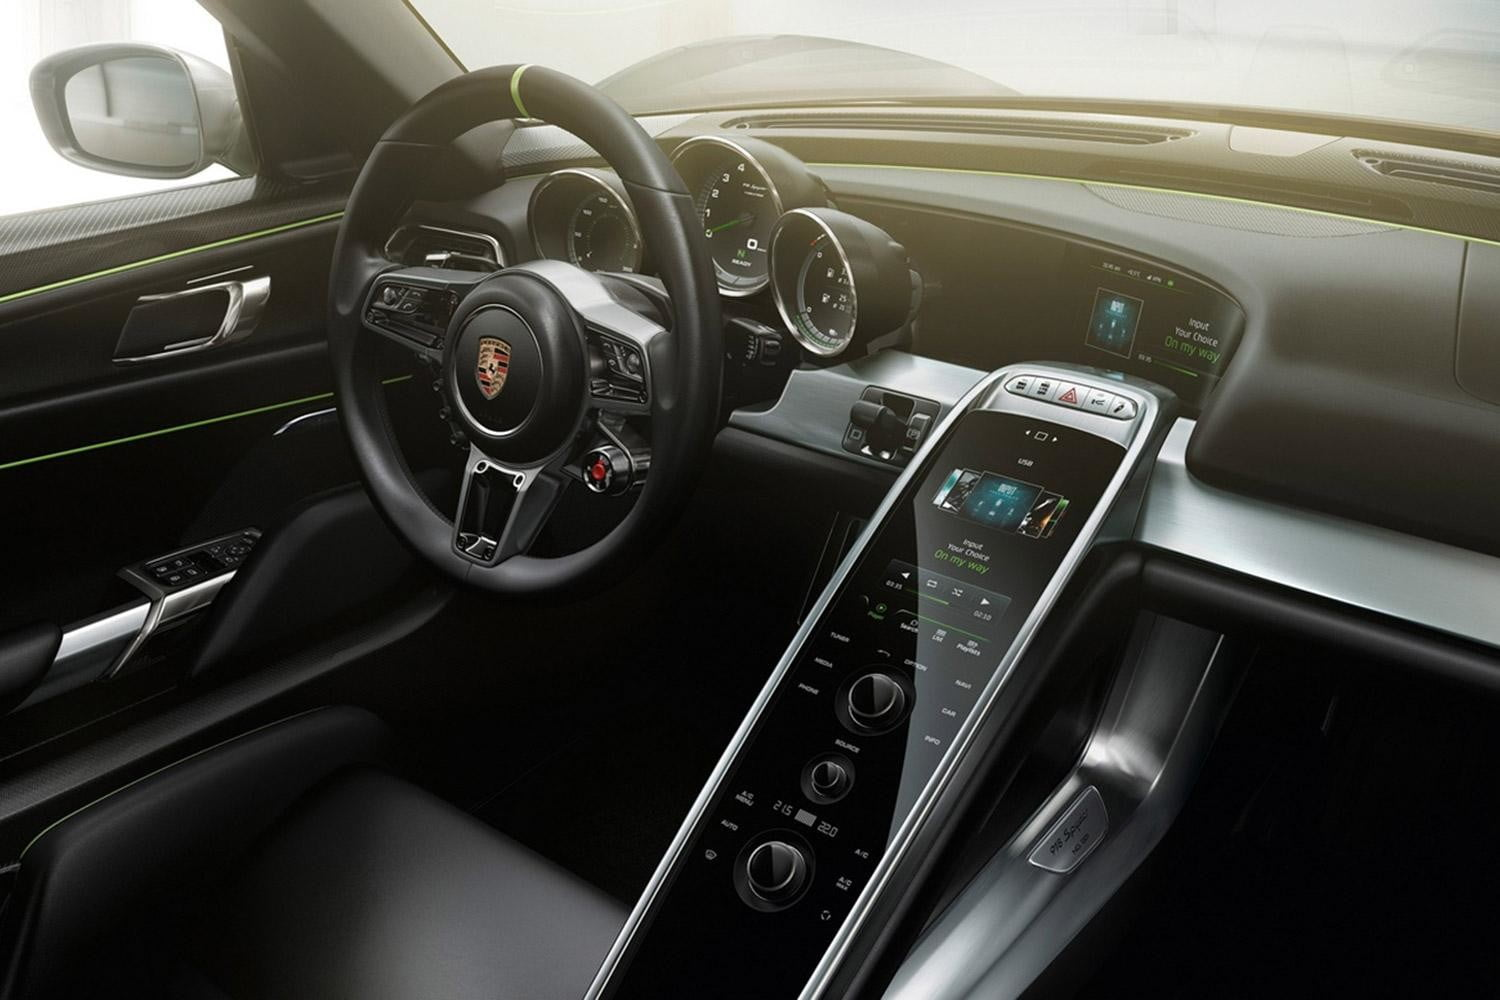 Porsche 918 Spyder Hybrid Has 1 Million Price Tag Frankfurt Motor Show Digital Trends